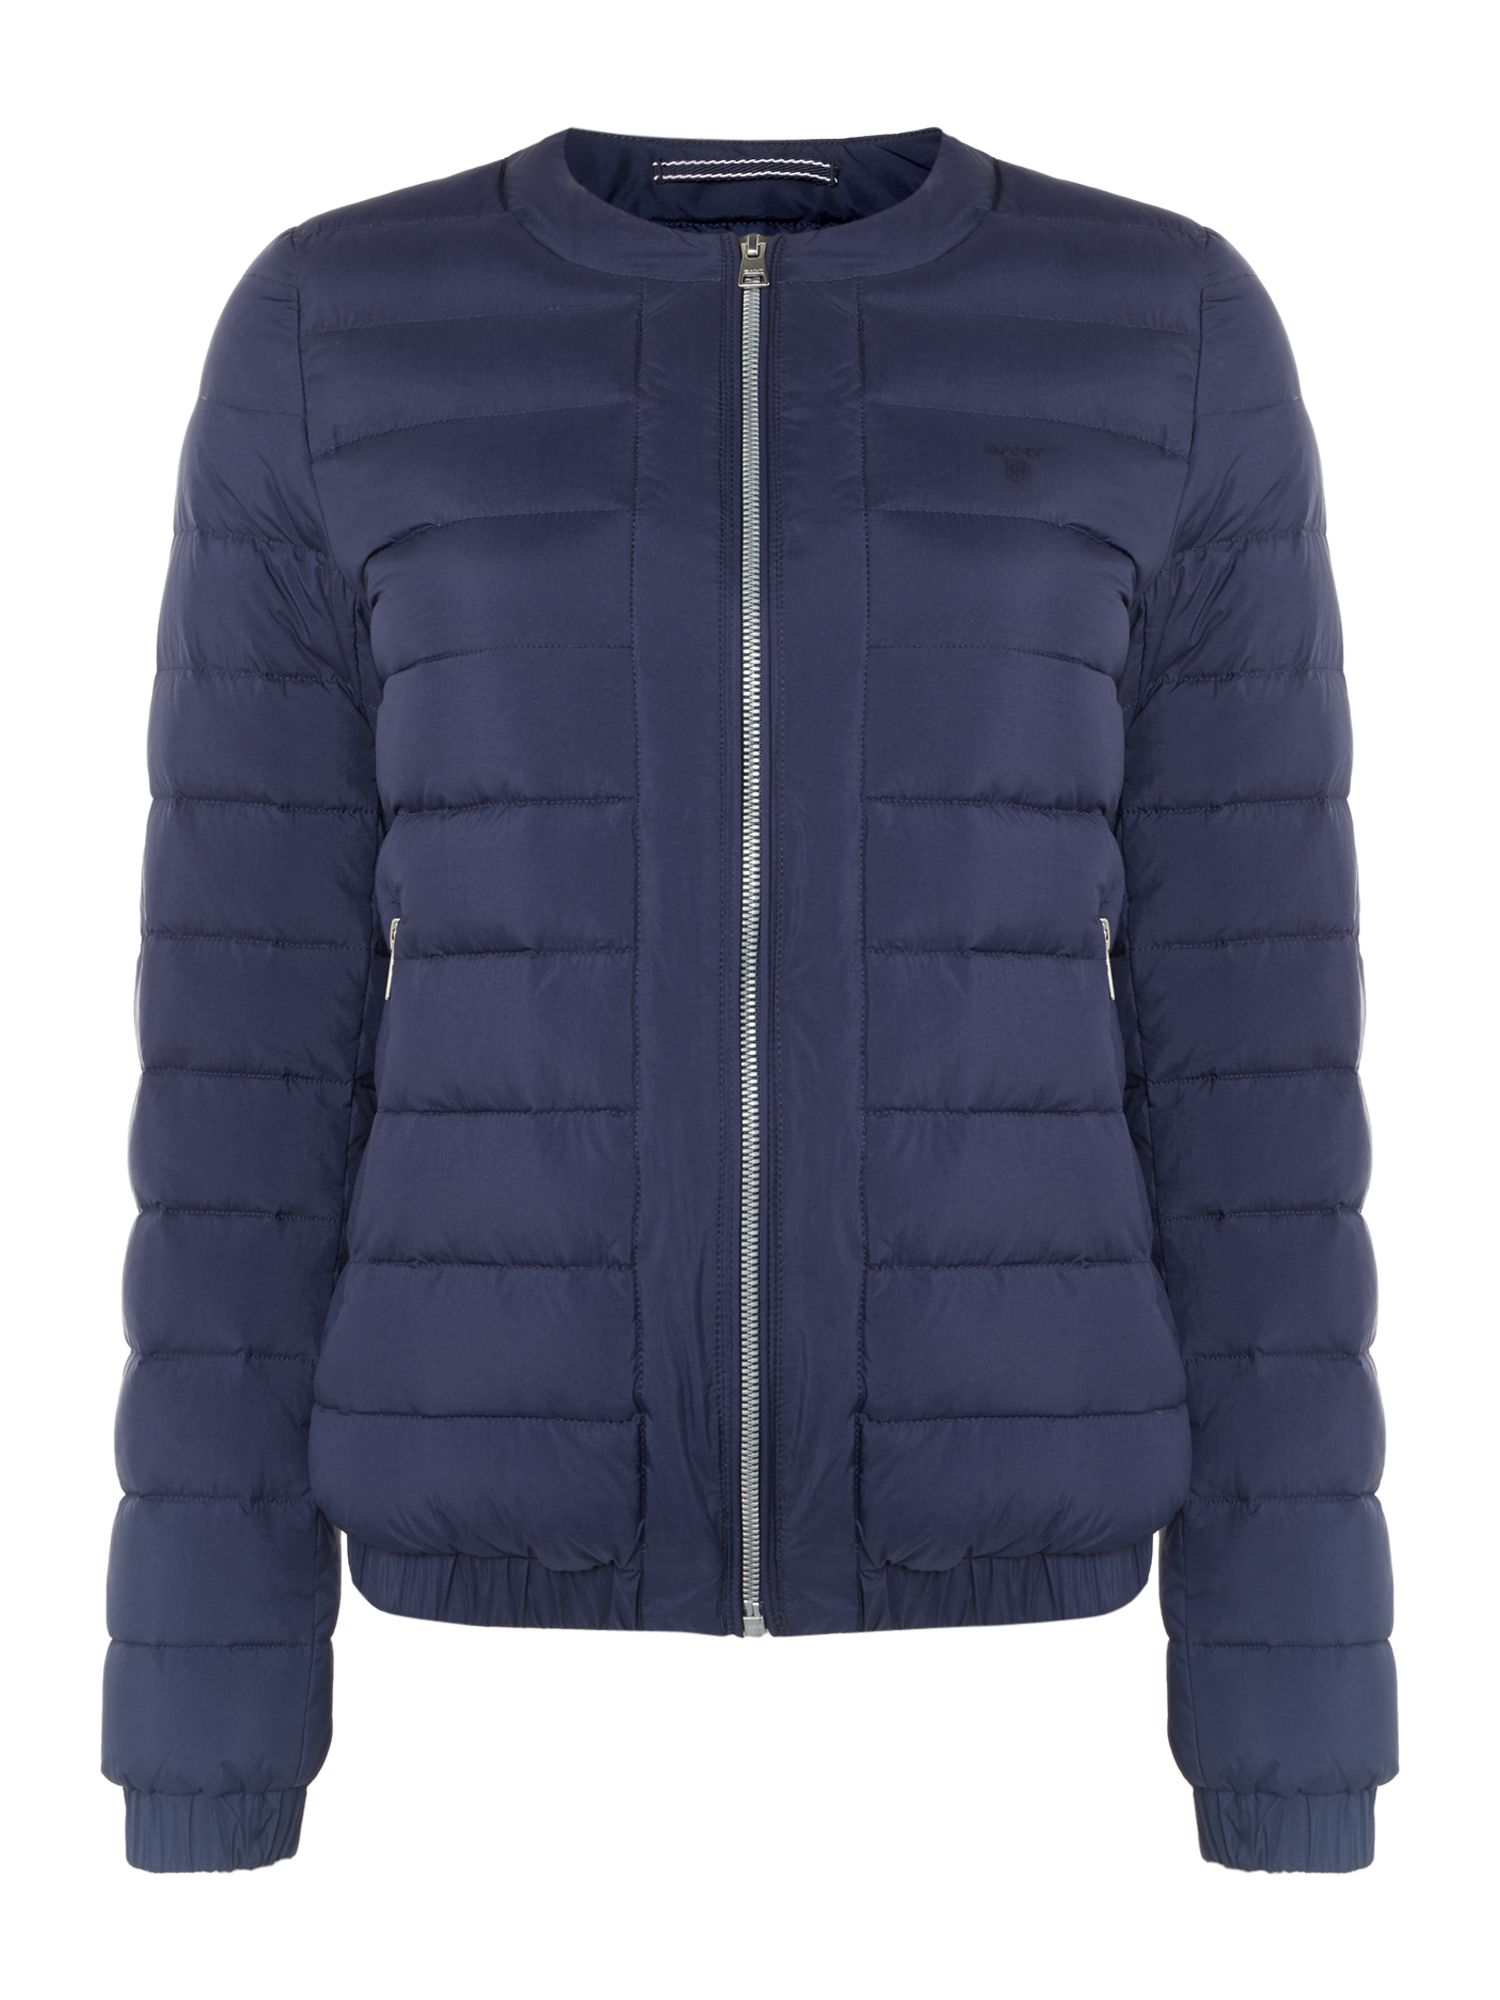 GANT Light Weight Down Quilted Blouson Jacket, Blue